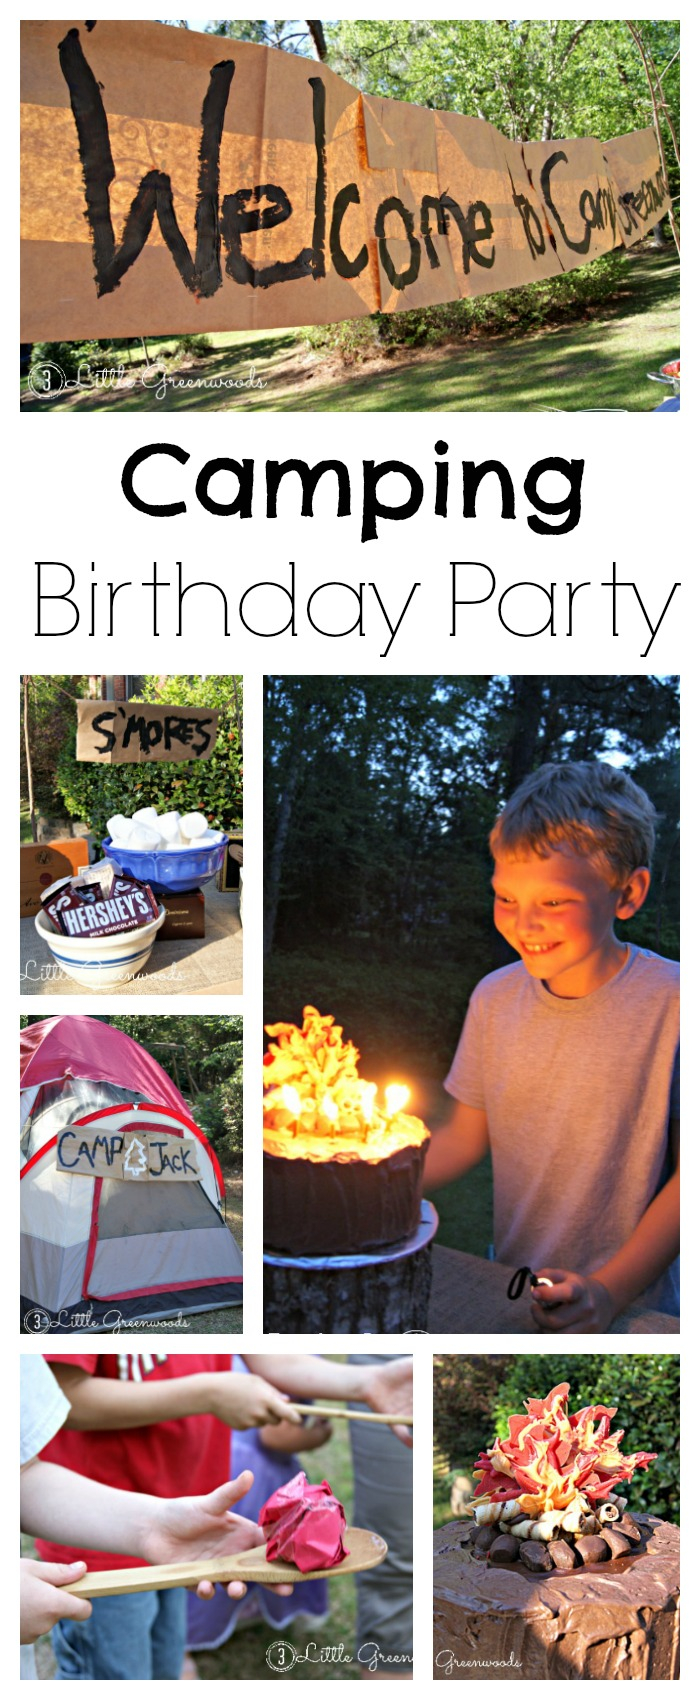 Camping Birthday Party Fun for Backyard Camping Ideas For Adults